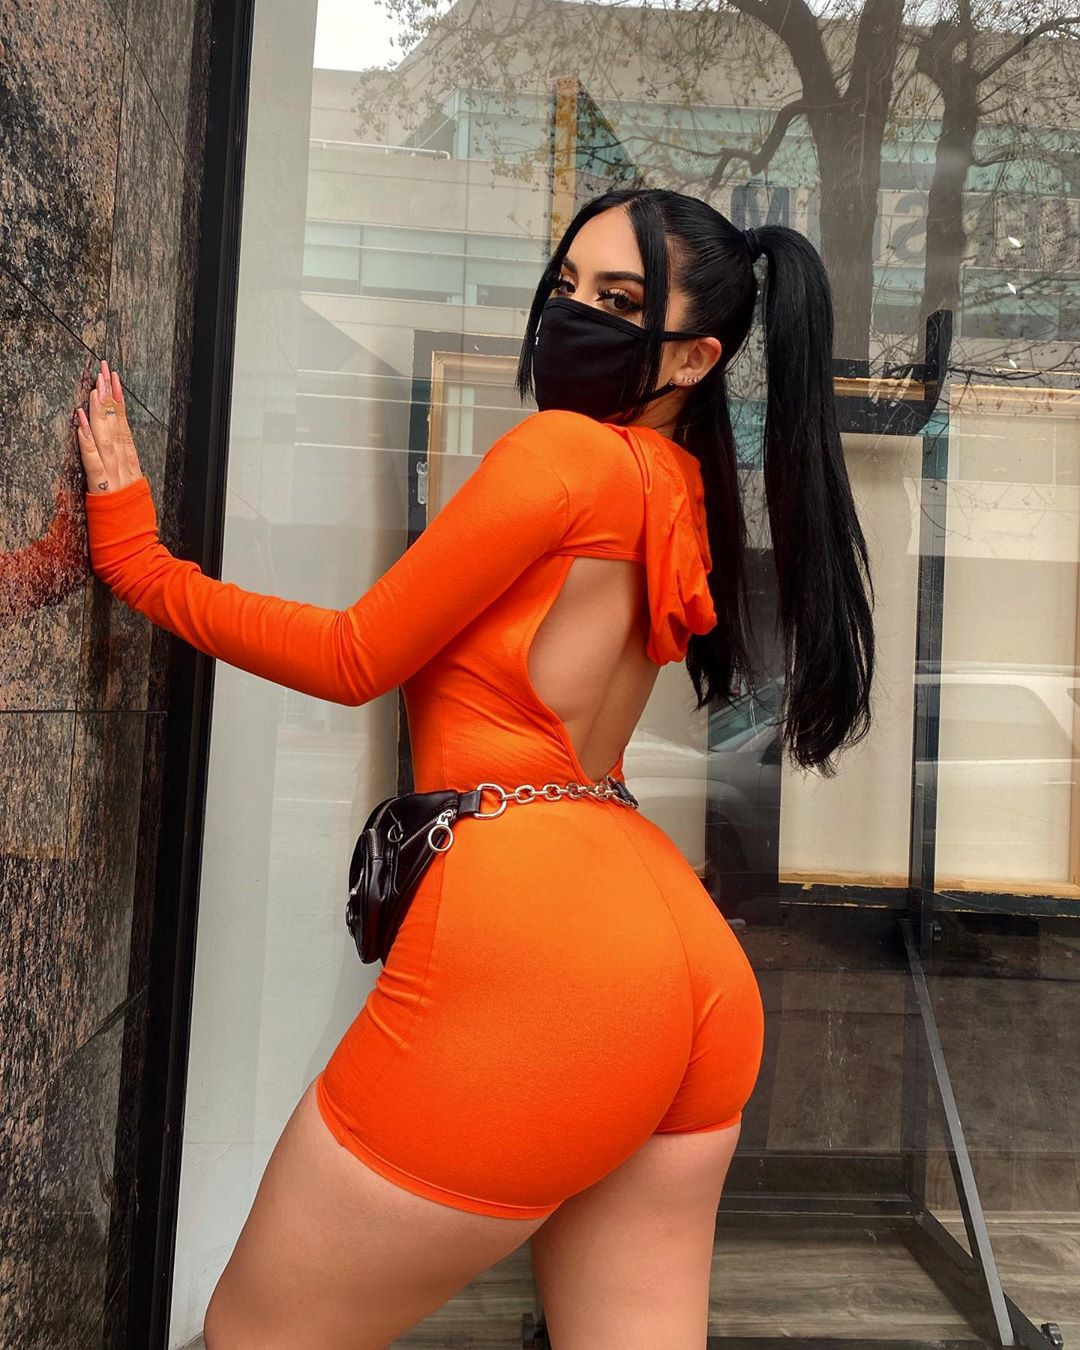 orange sexy photo in lingerie, female thighs, hot legs